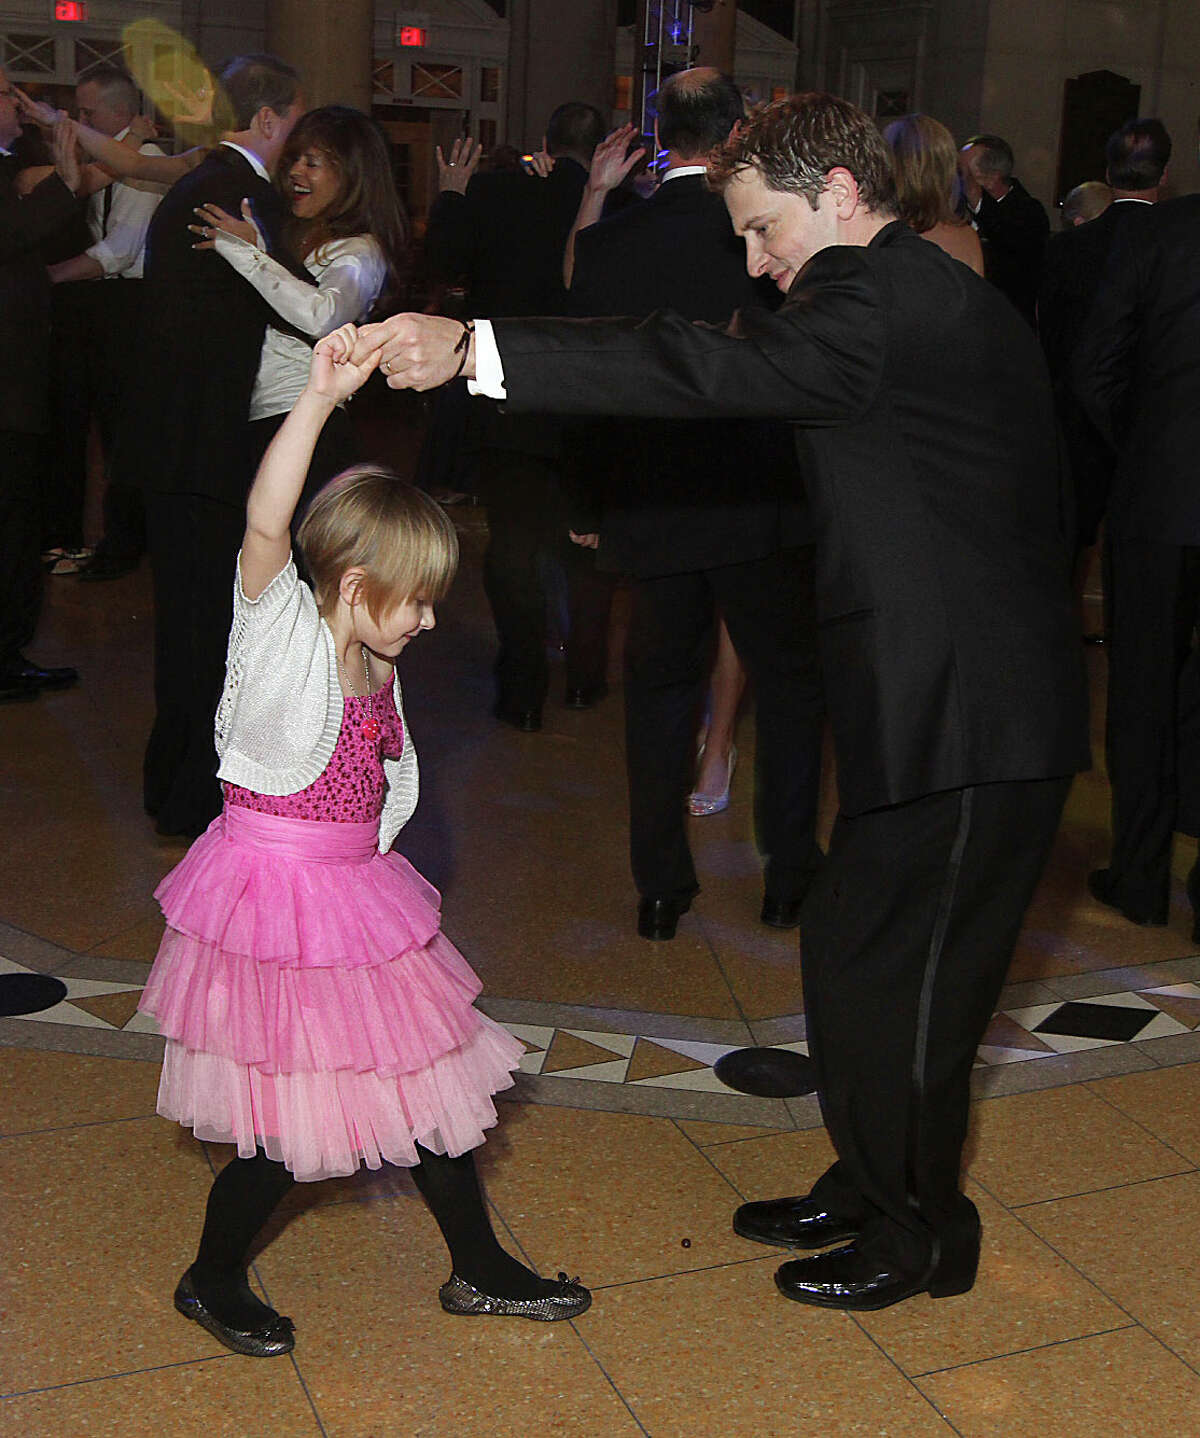 Were you Seen at 'A Wishful Evening: Dancing Beneath the Stars' to benefit the Make-A-Wish Foundation of Northeast New York at the Hall of Springs in Saratoga Springs on Saturday, March 16, 2013?